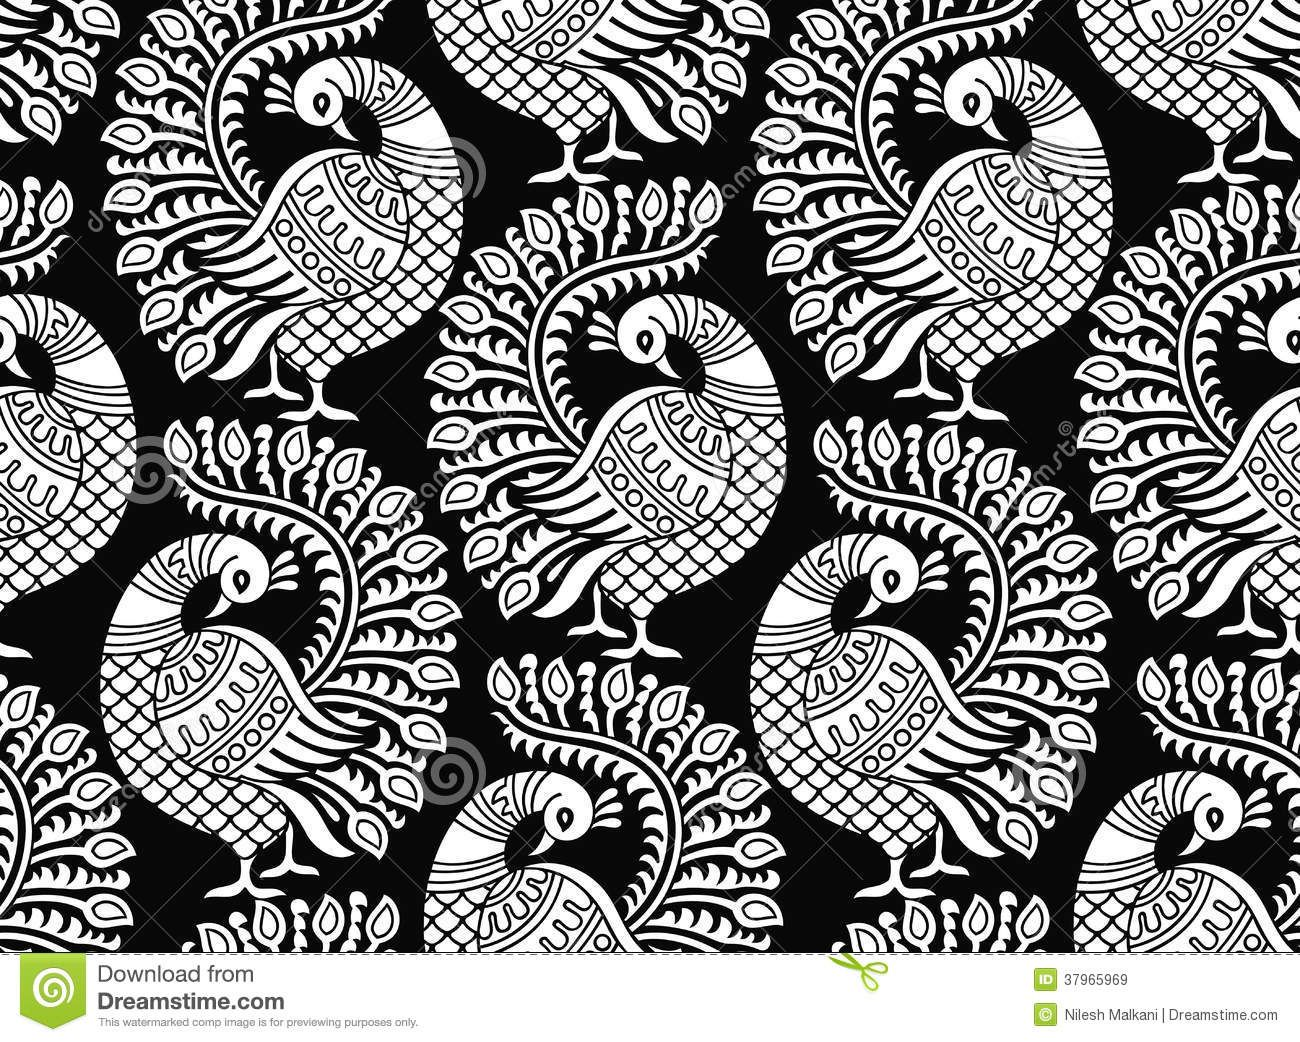 Line Design Clipart Free : Seamless vector peacock design royalty free stock images image